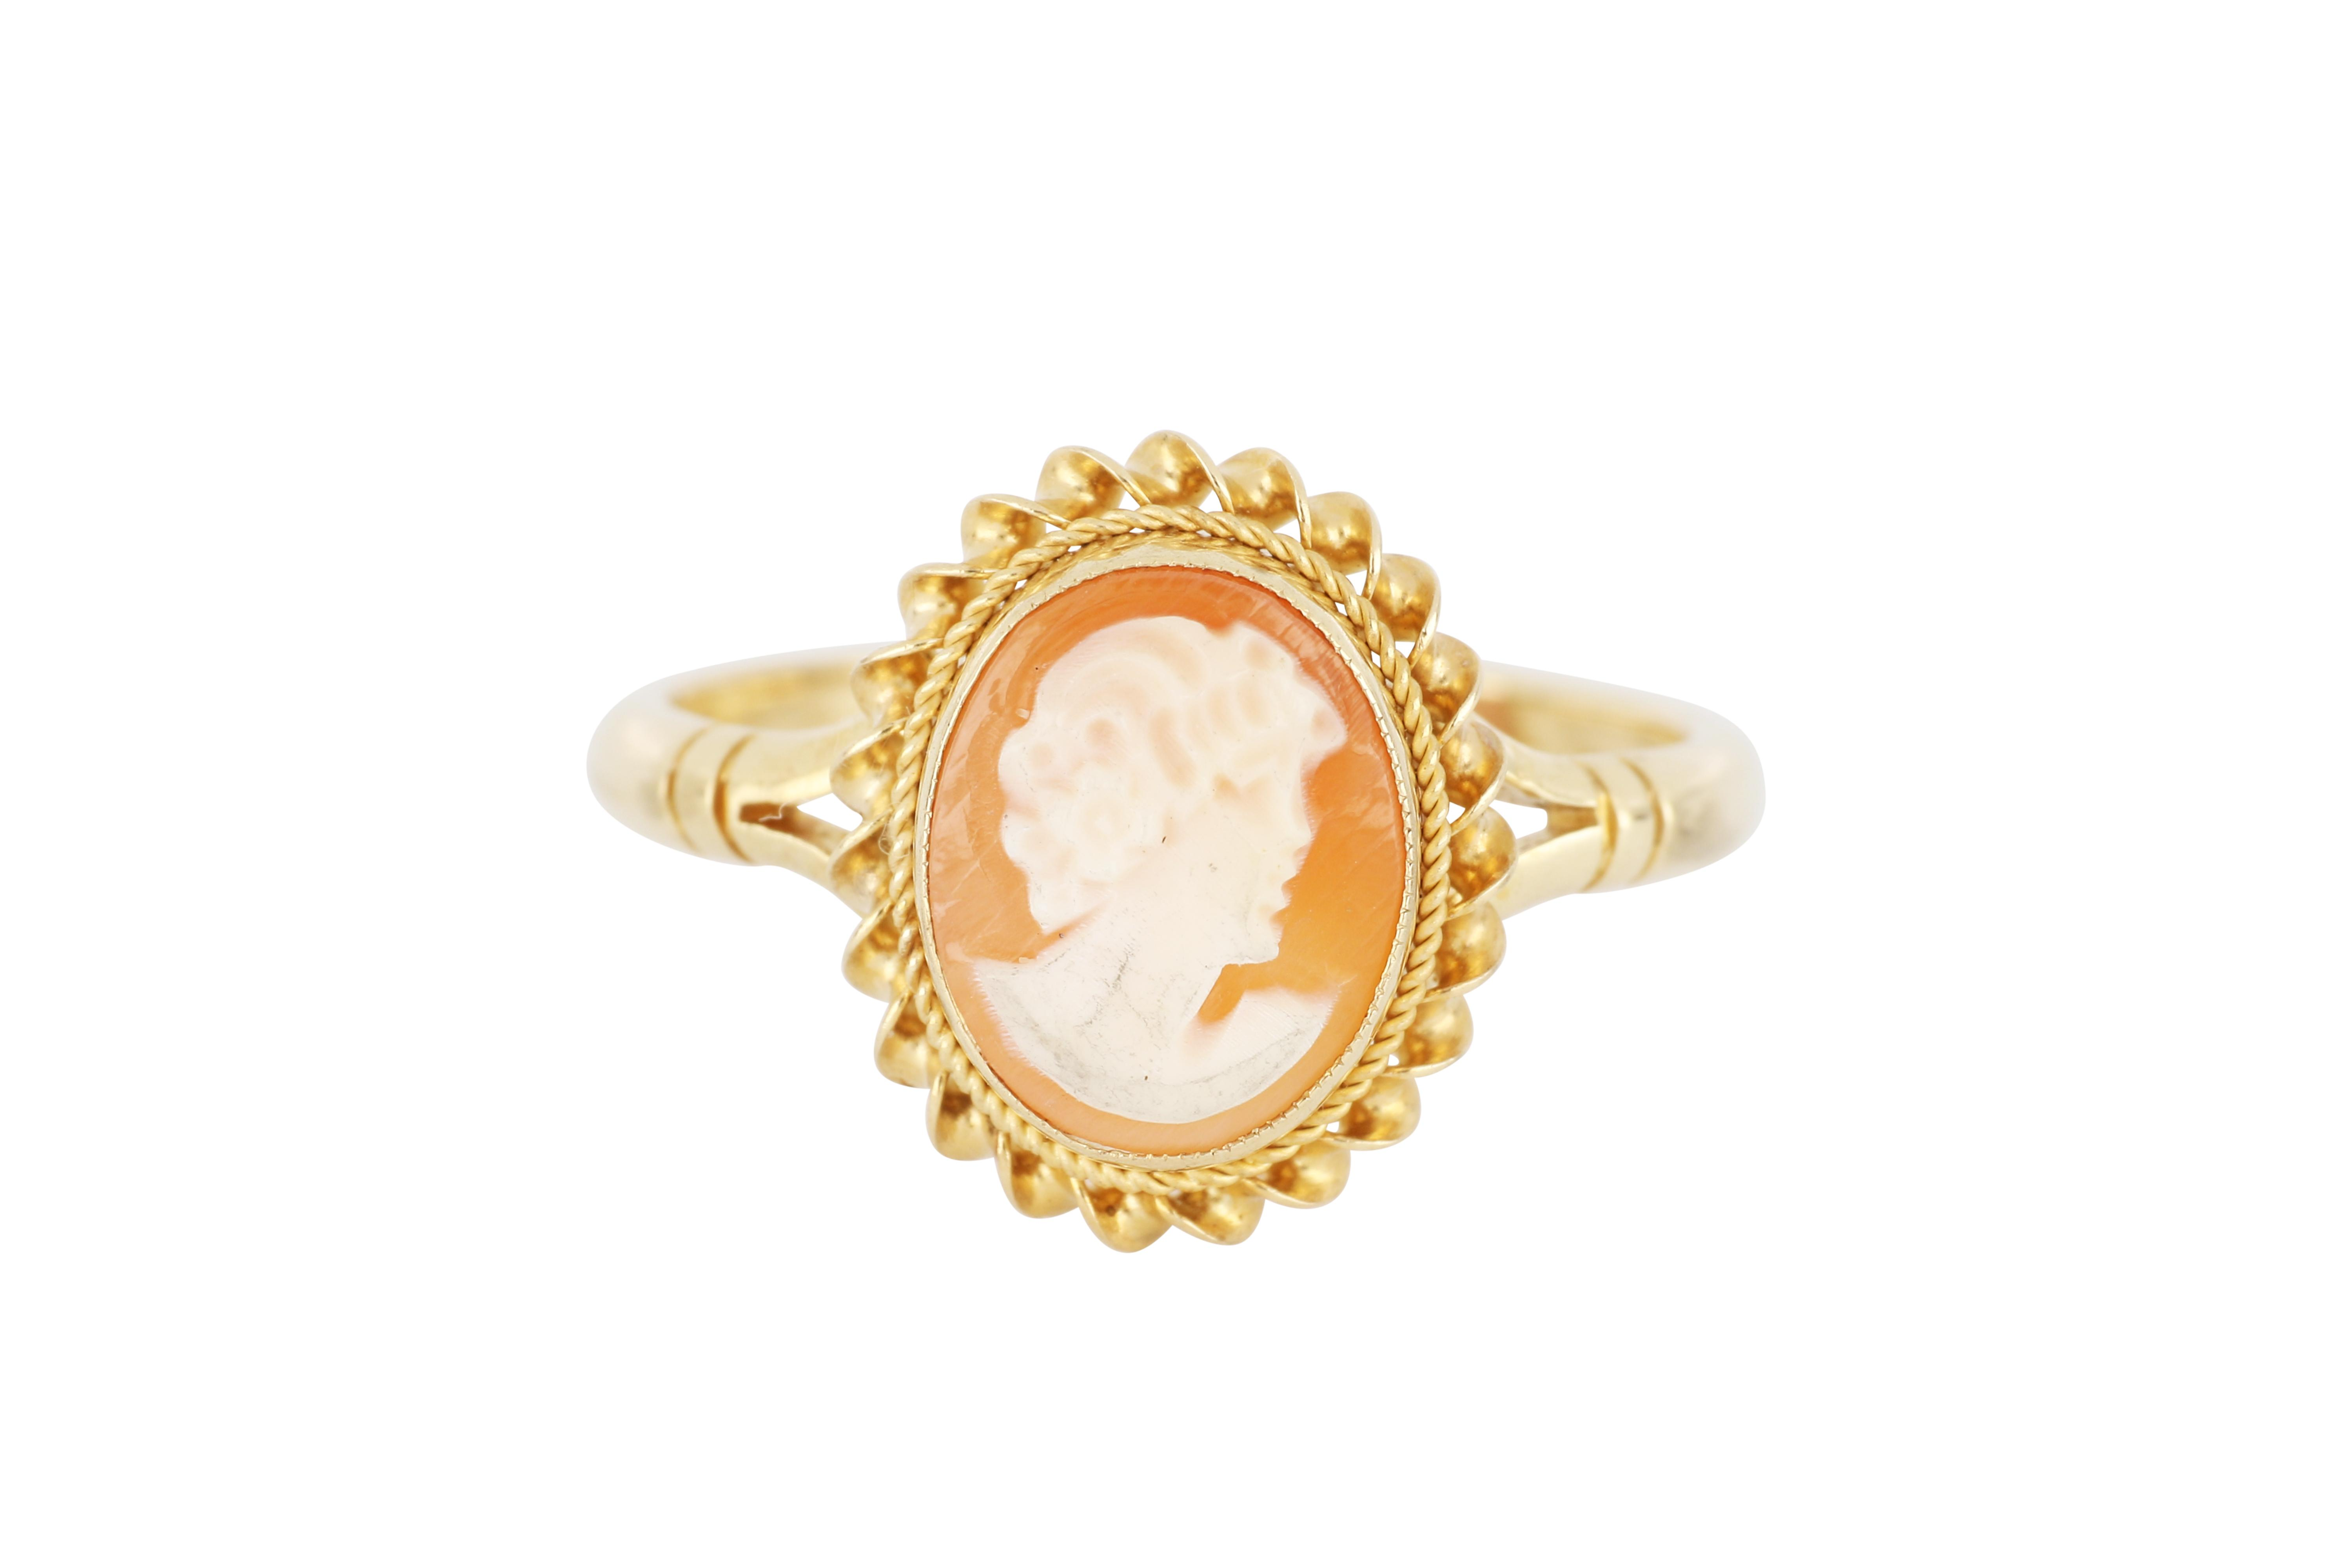 9ct gold cameo dress ring